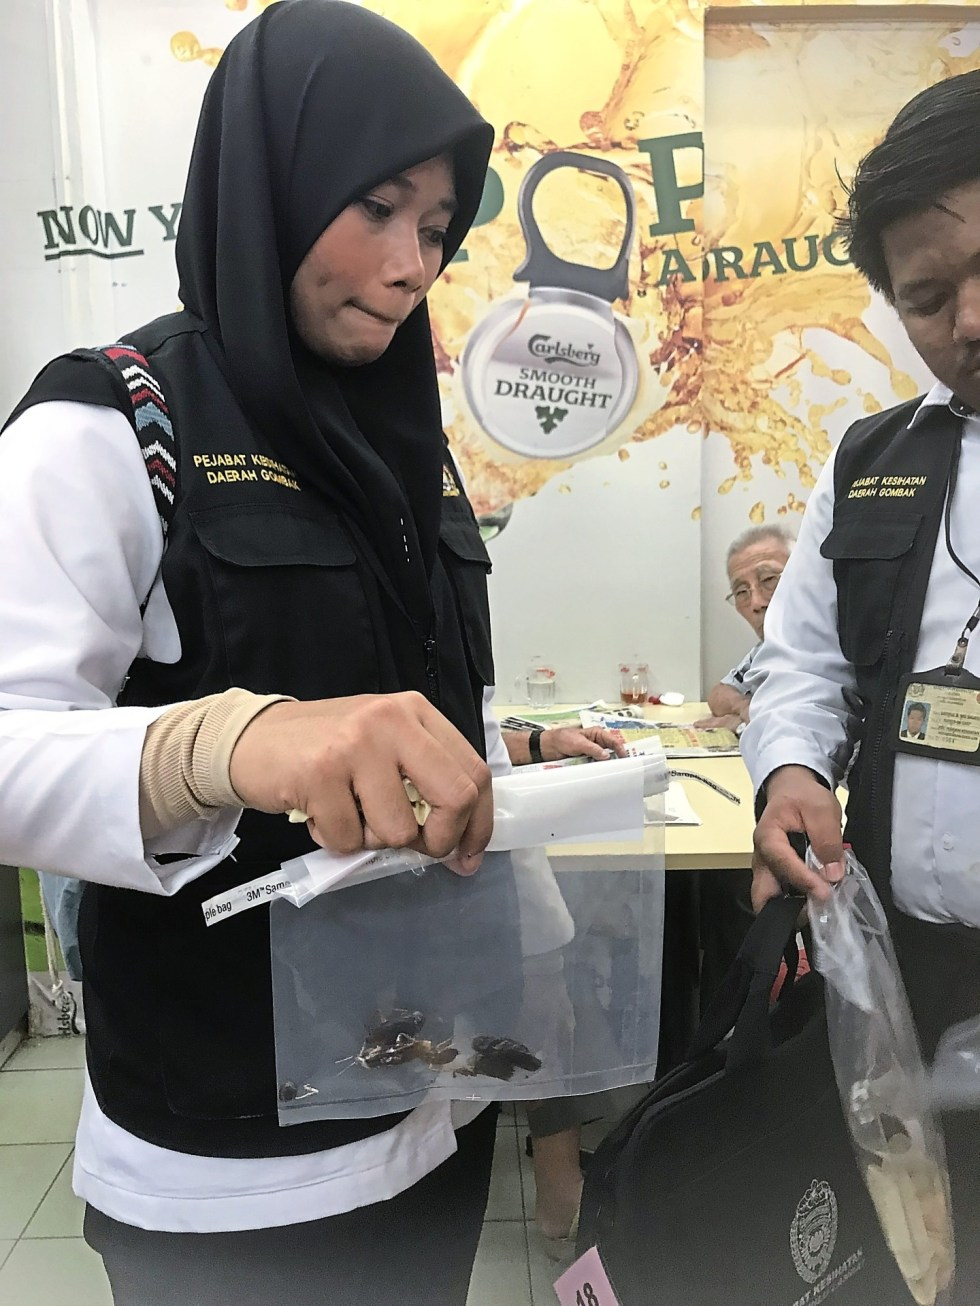 Dead cockroaches found in some premises during the joint inspection by the Selangor Health Department and Hulu Langat District Office.